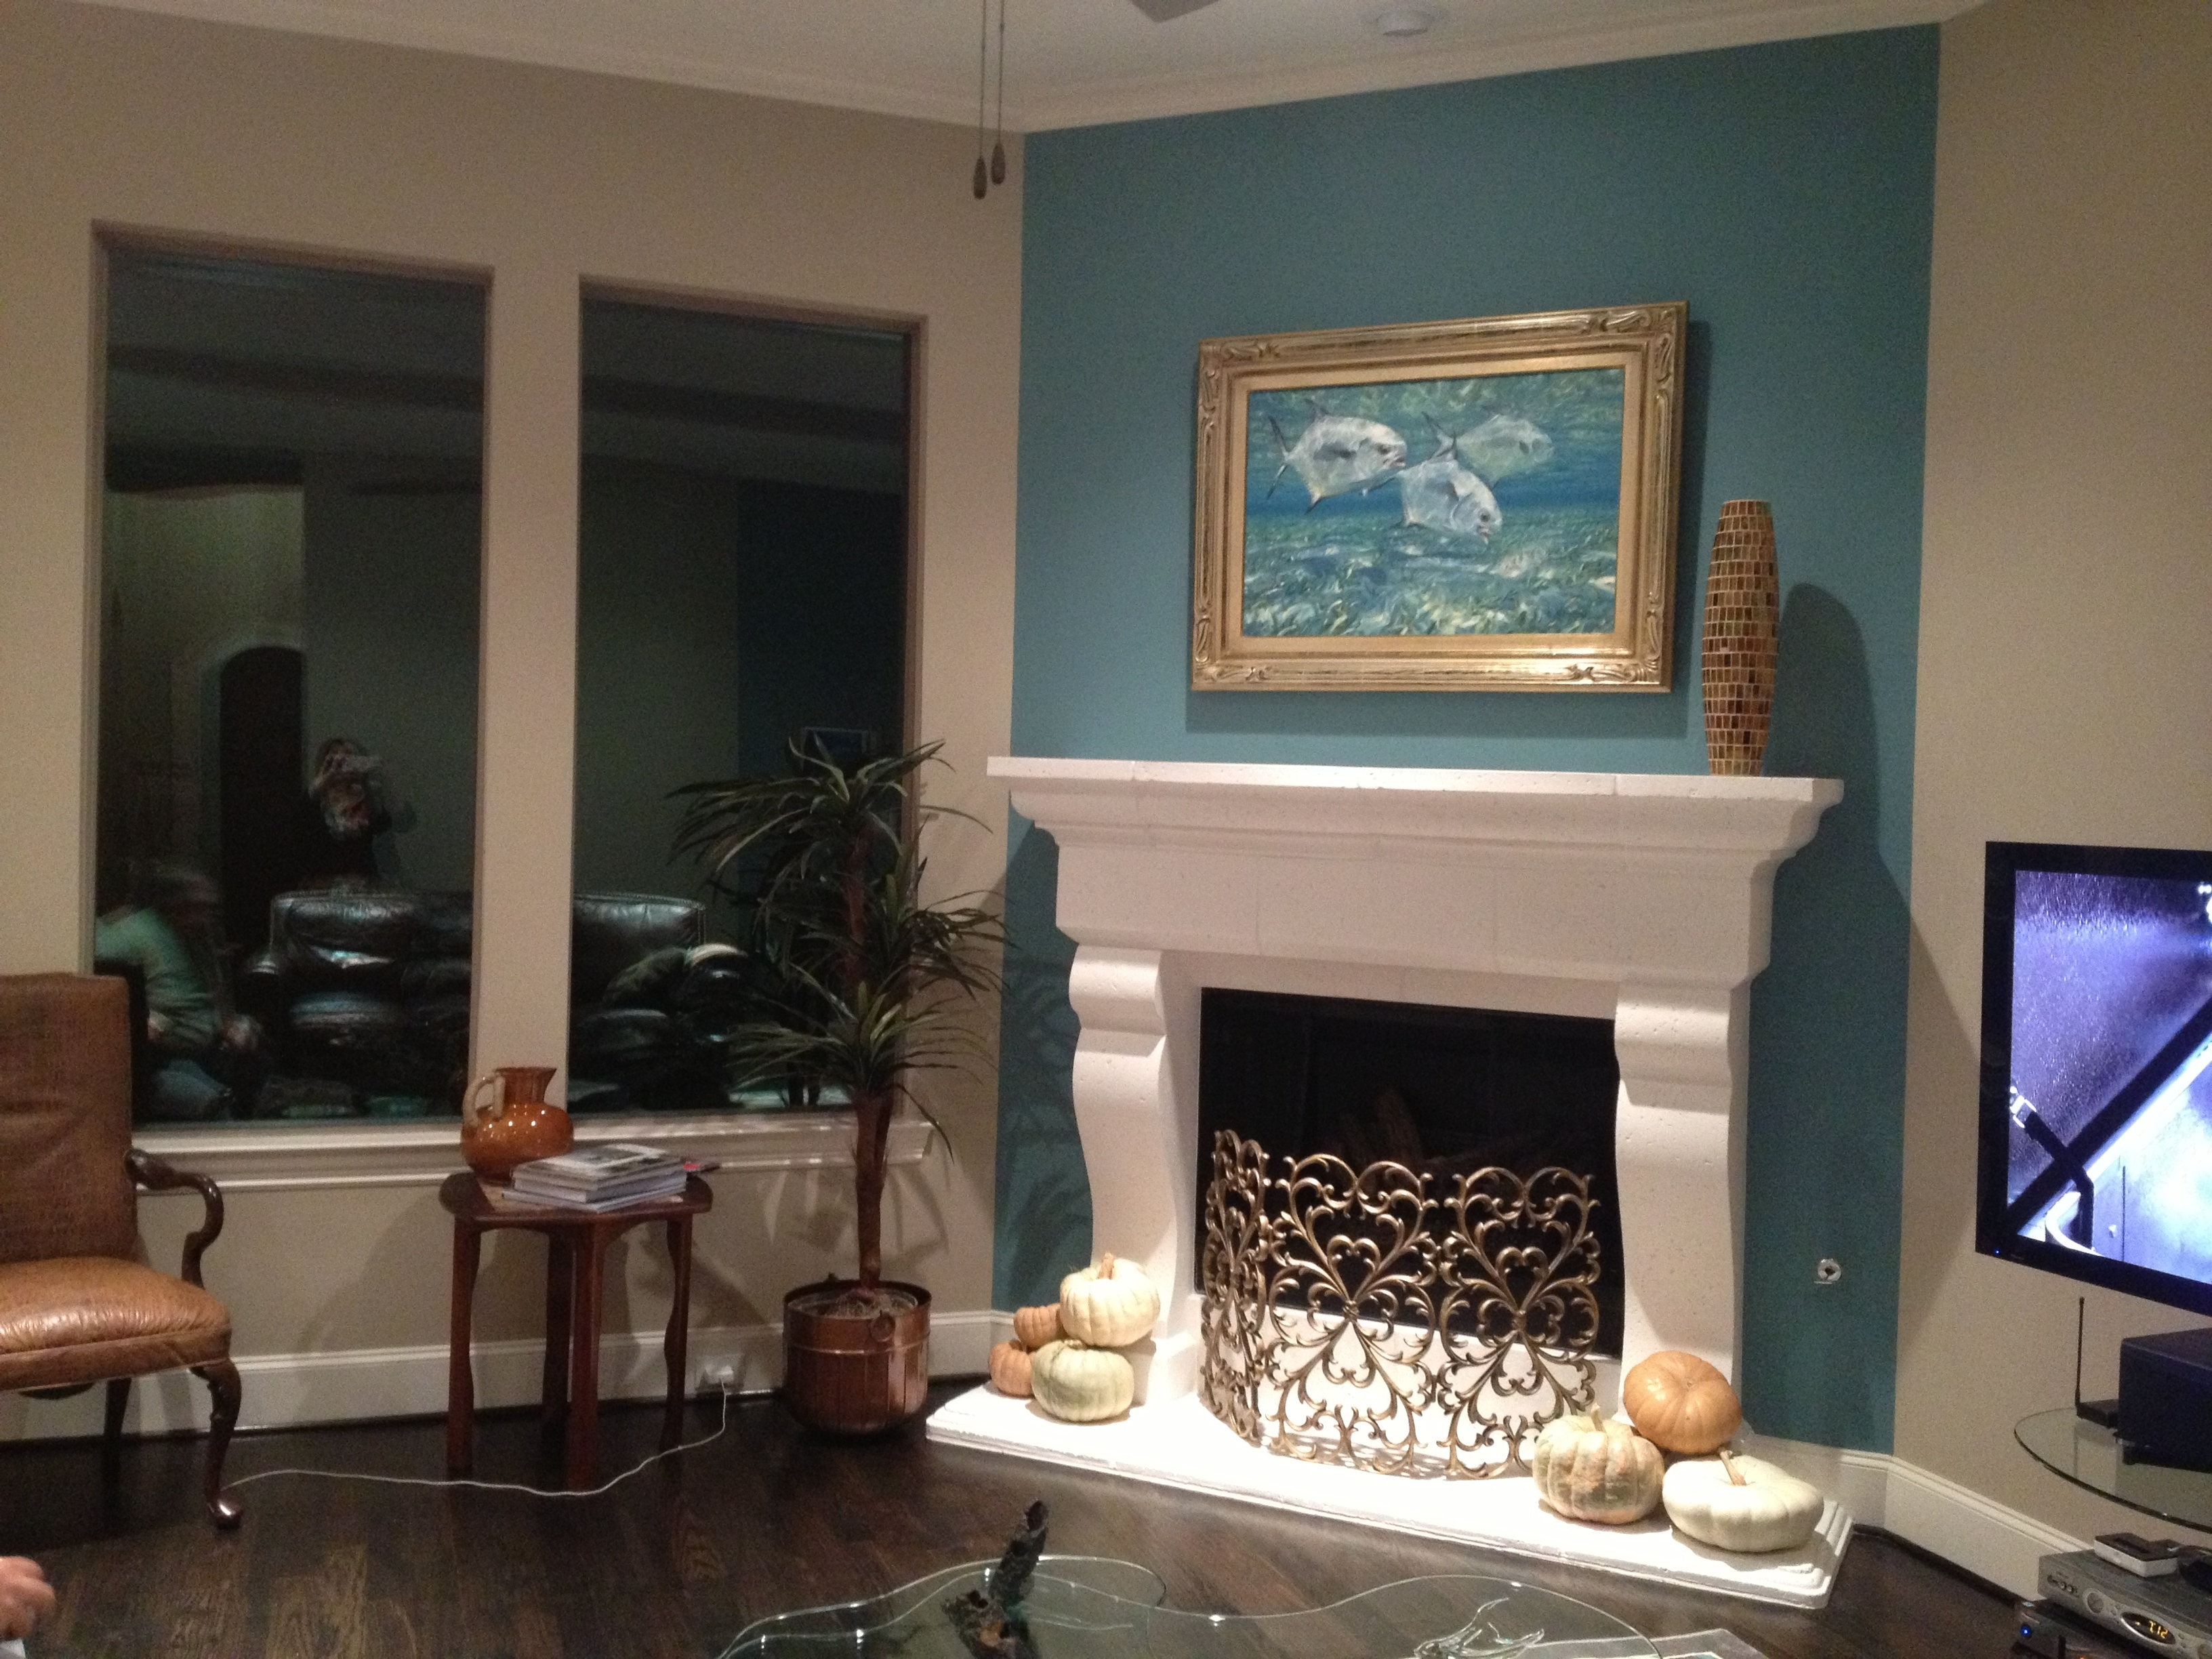 Fireplace Accent Wall Complements Painting (View 9 of 15)